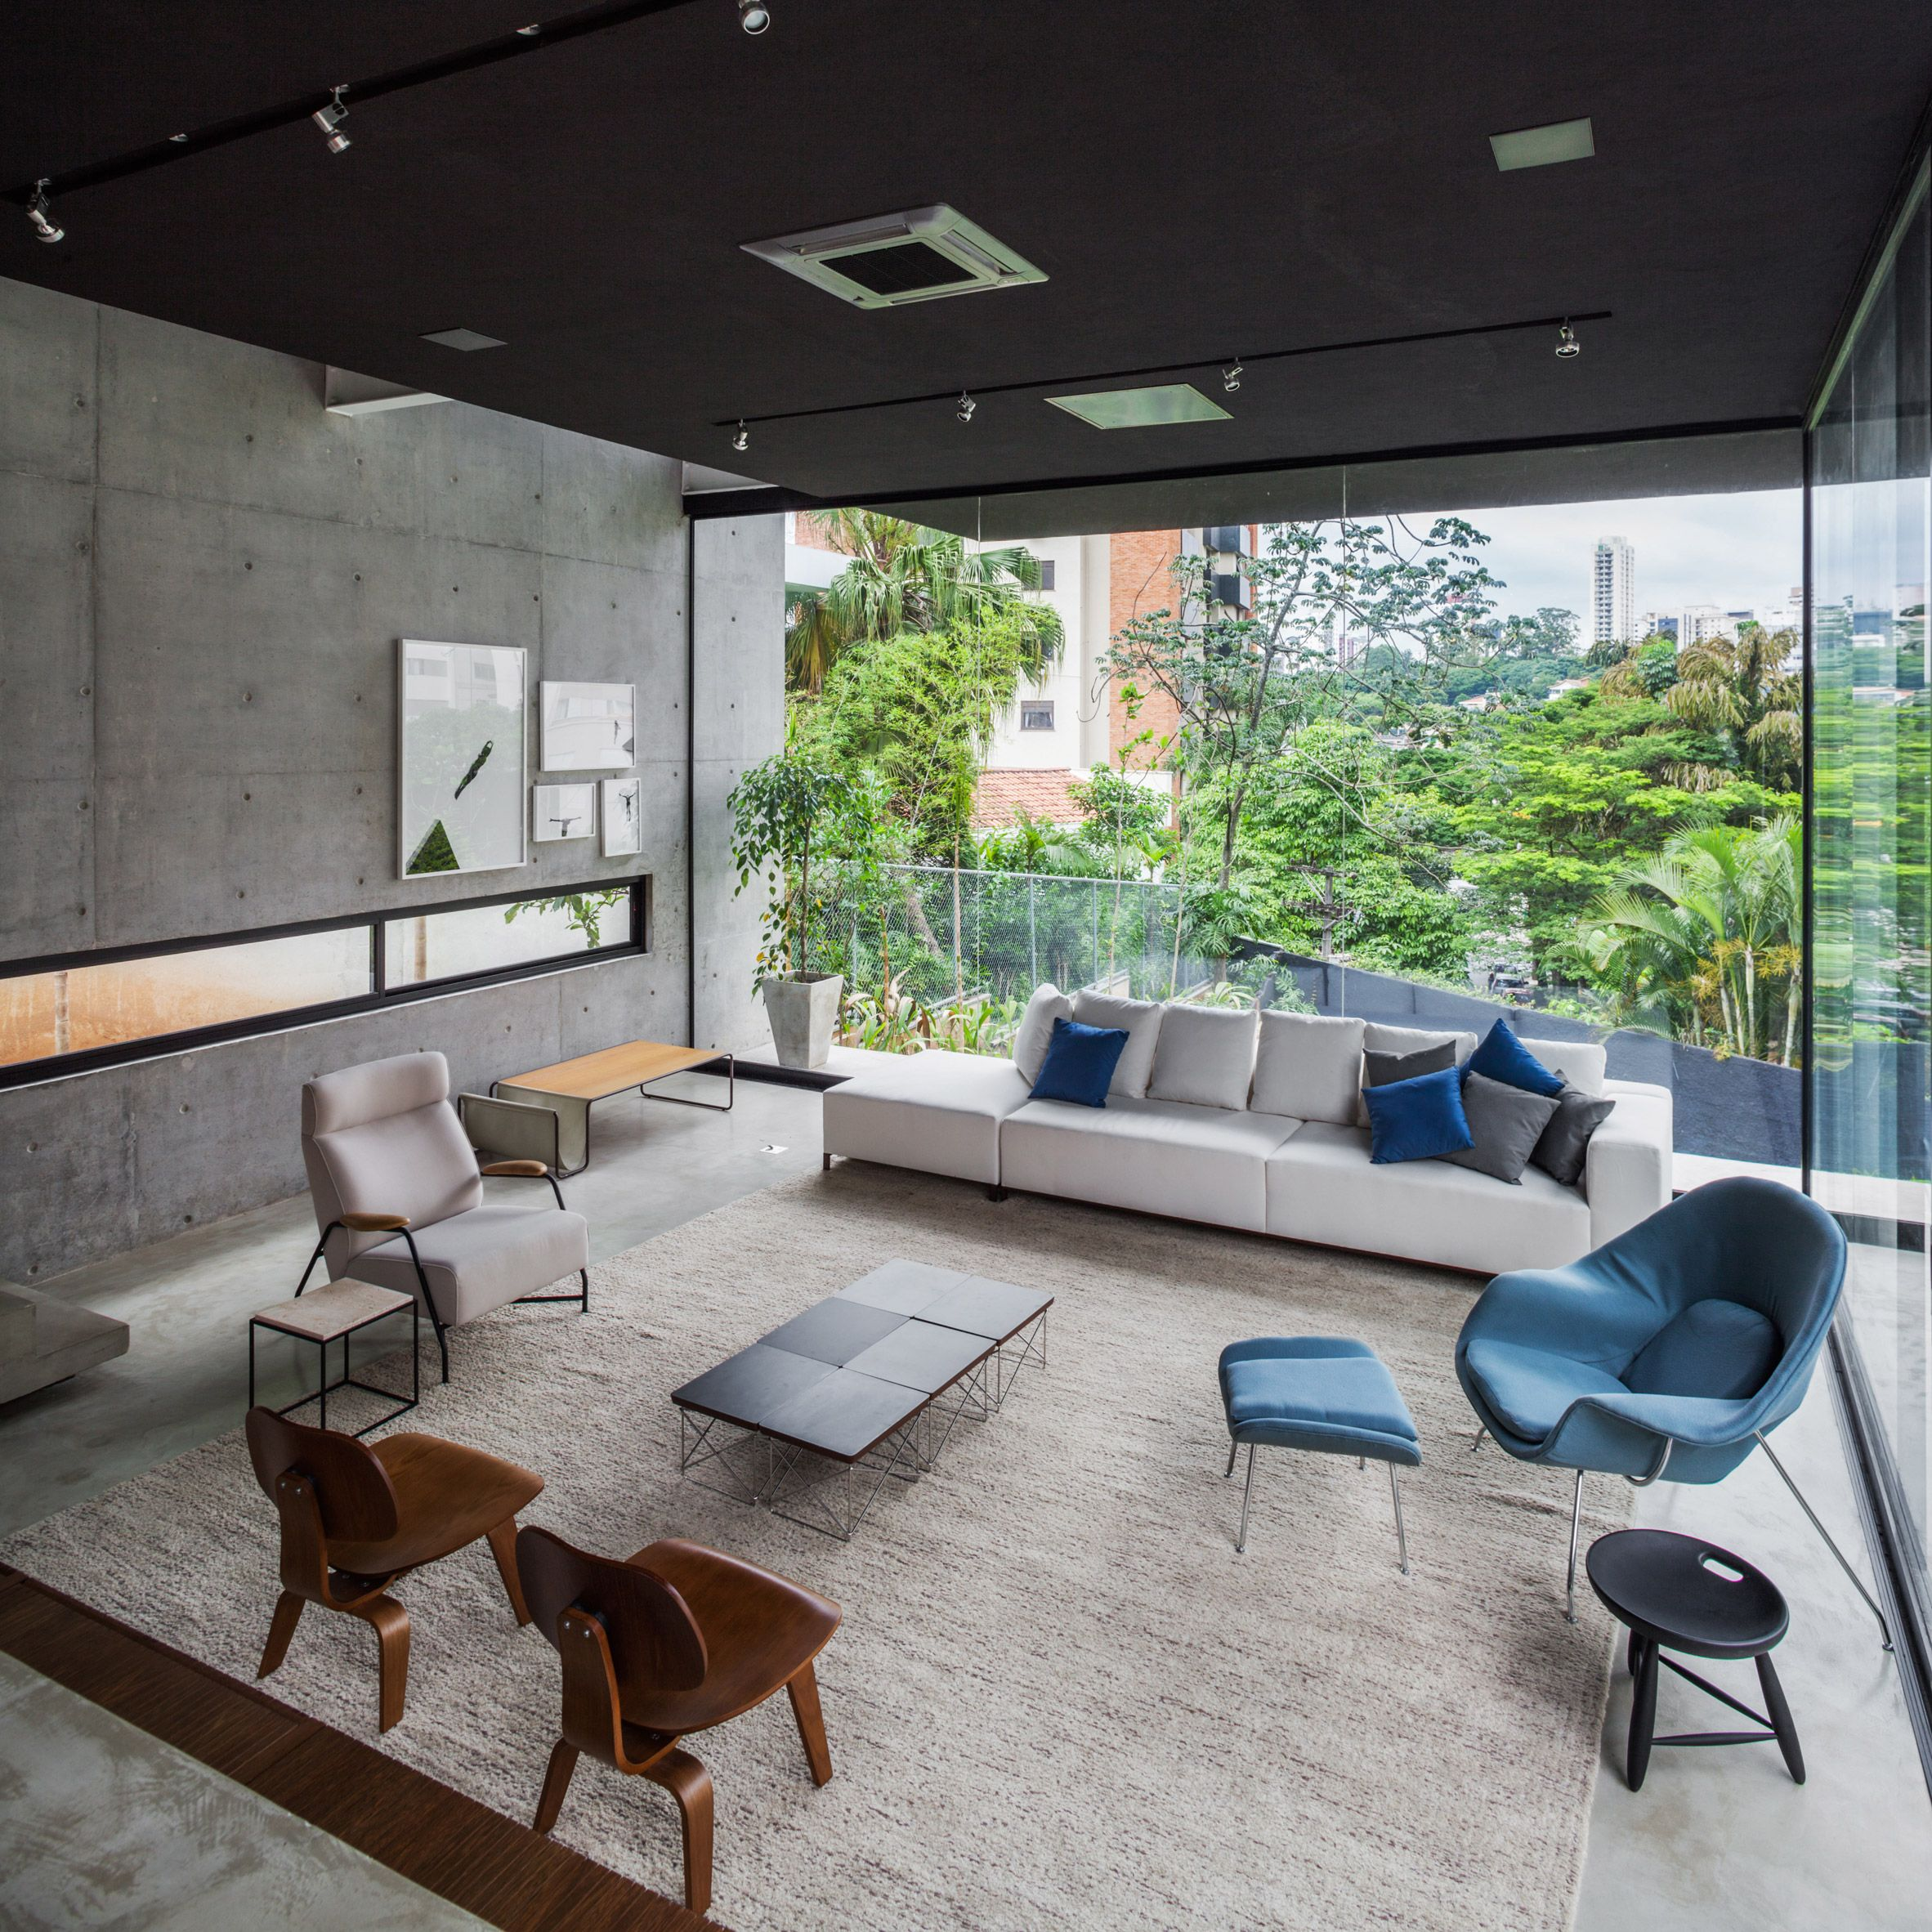 Concrete Volume Appears To Rest On Glass In Brazilian